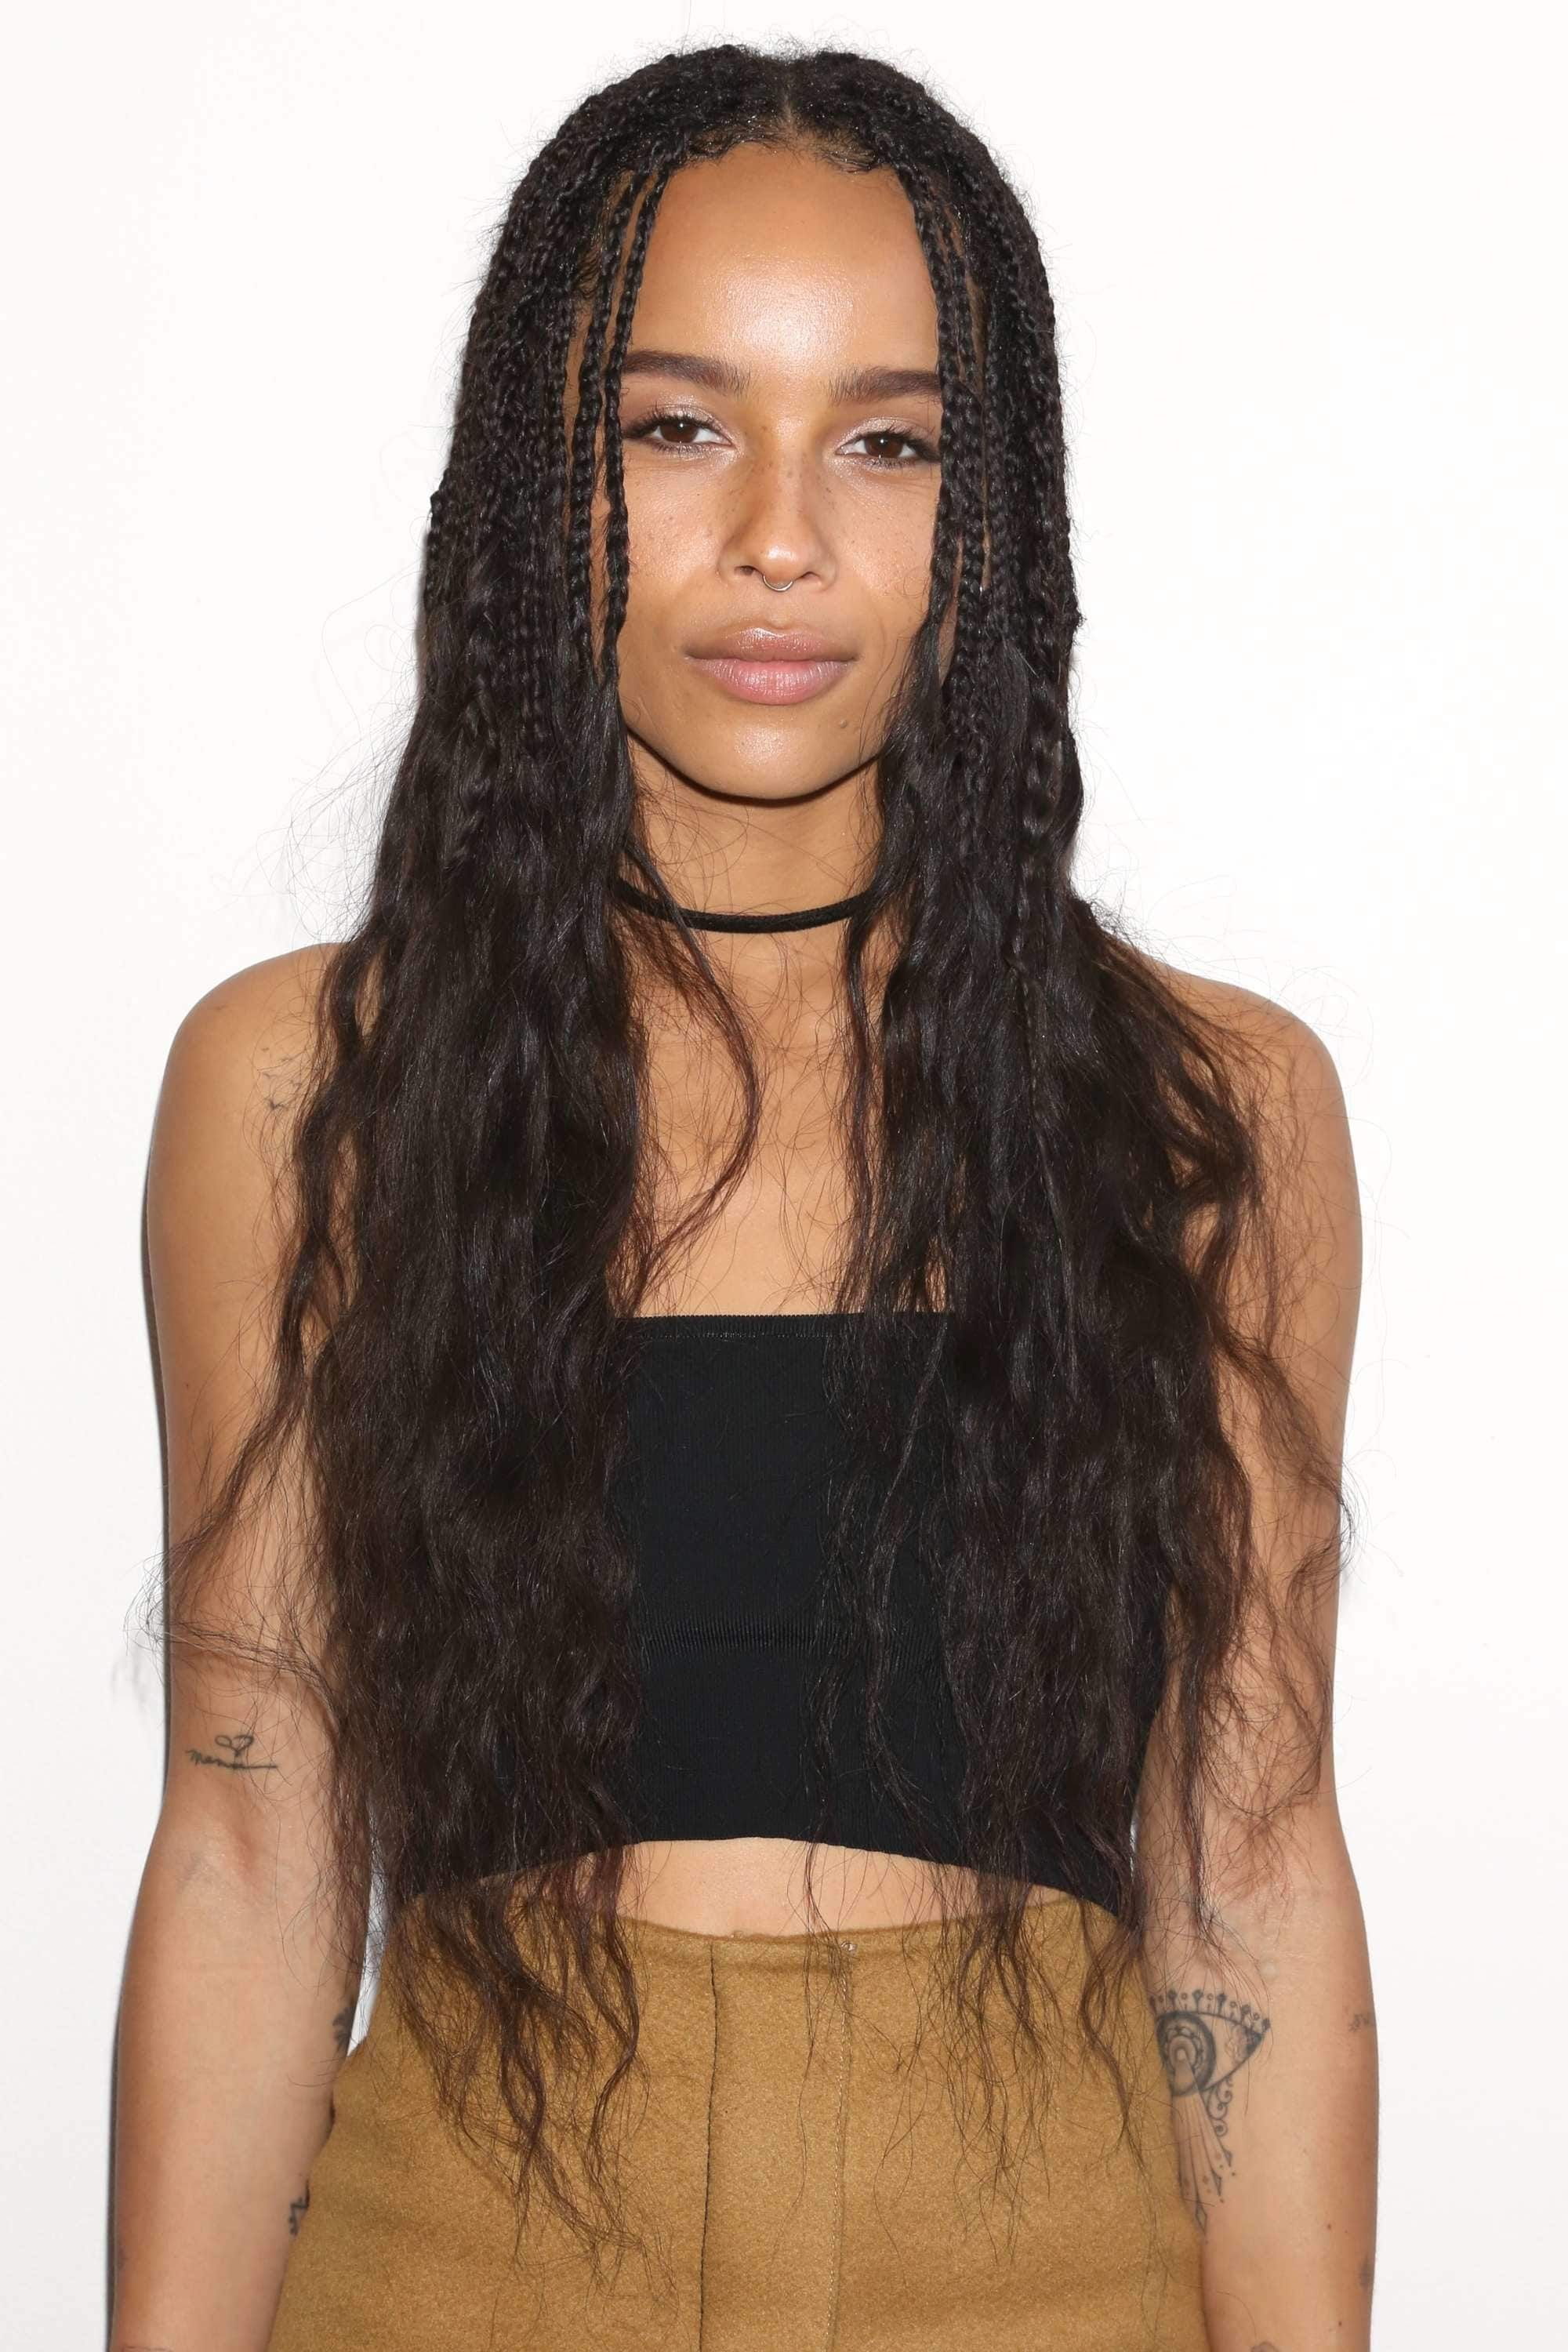 Latest Pic Box Braids Ideas Strategies Without A Doubt Once Not Really That Way Back When When A Specialized Loose Hairstyles Zoe Kravitz Braids Hair Styles